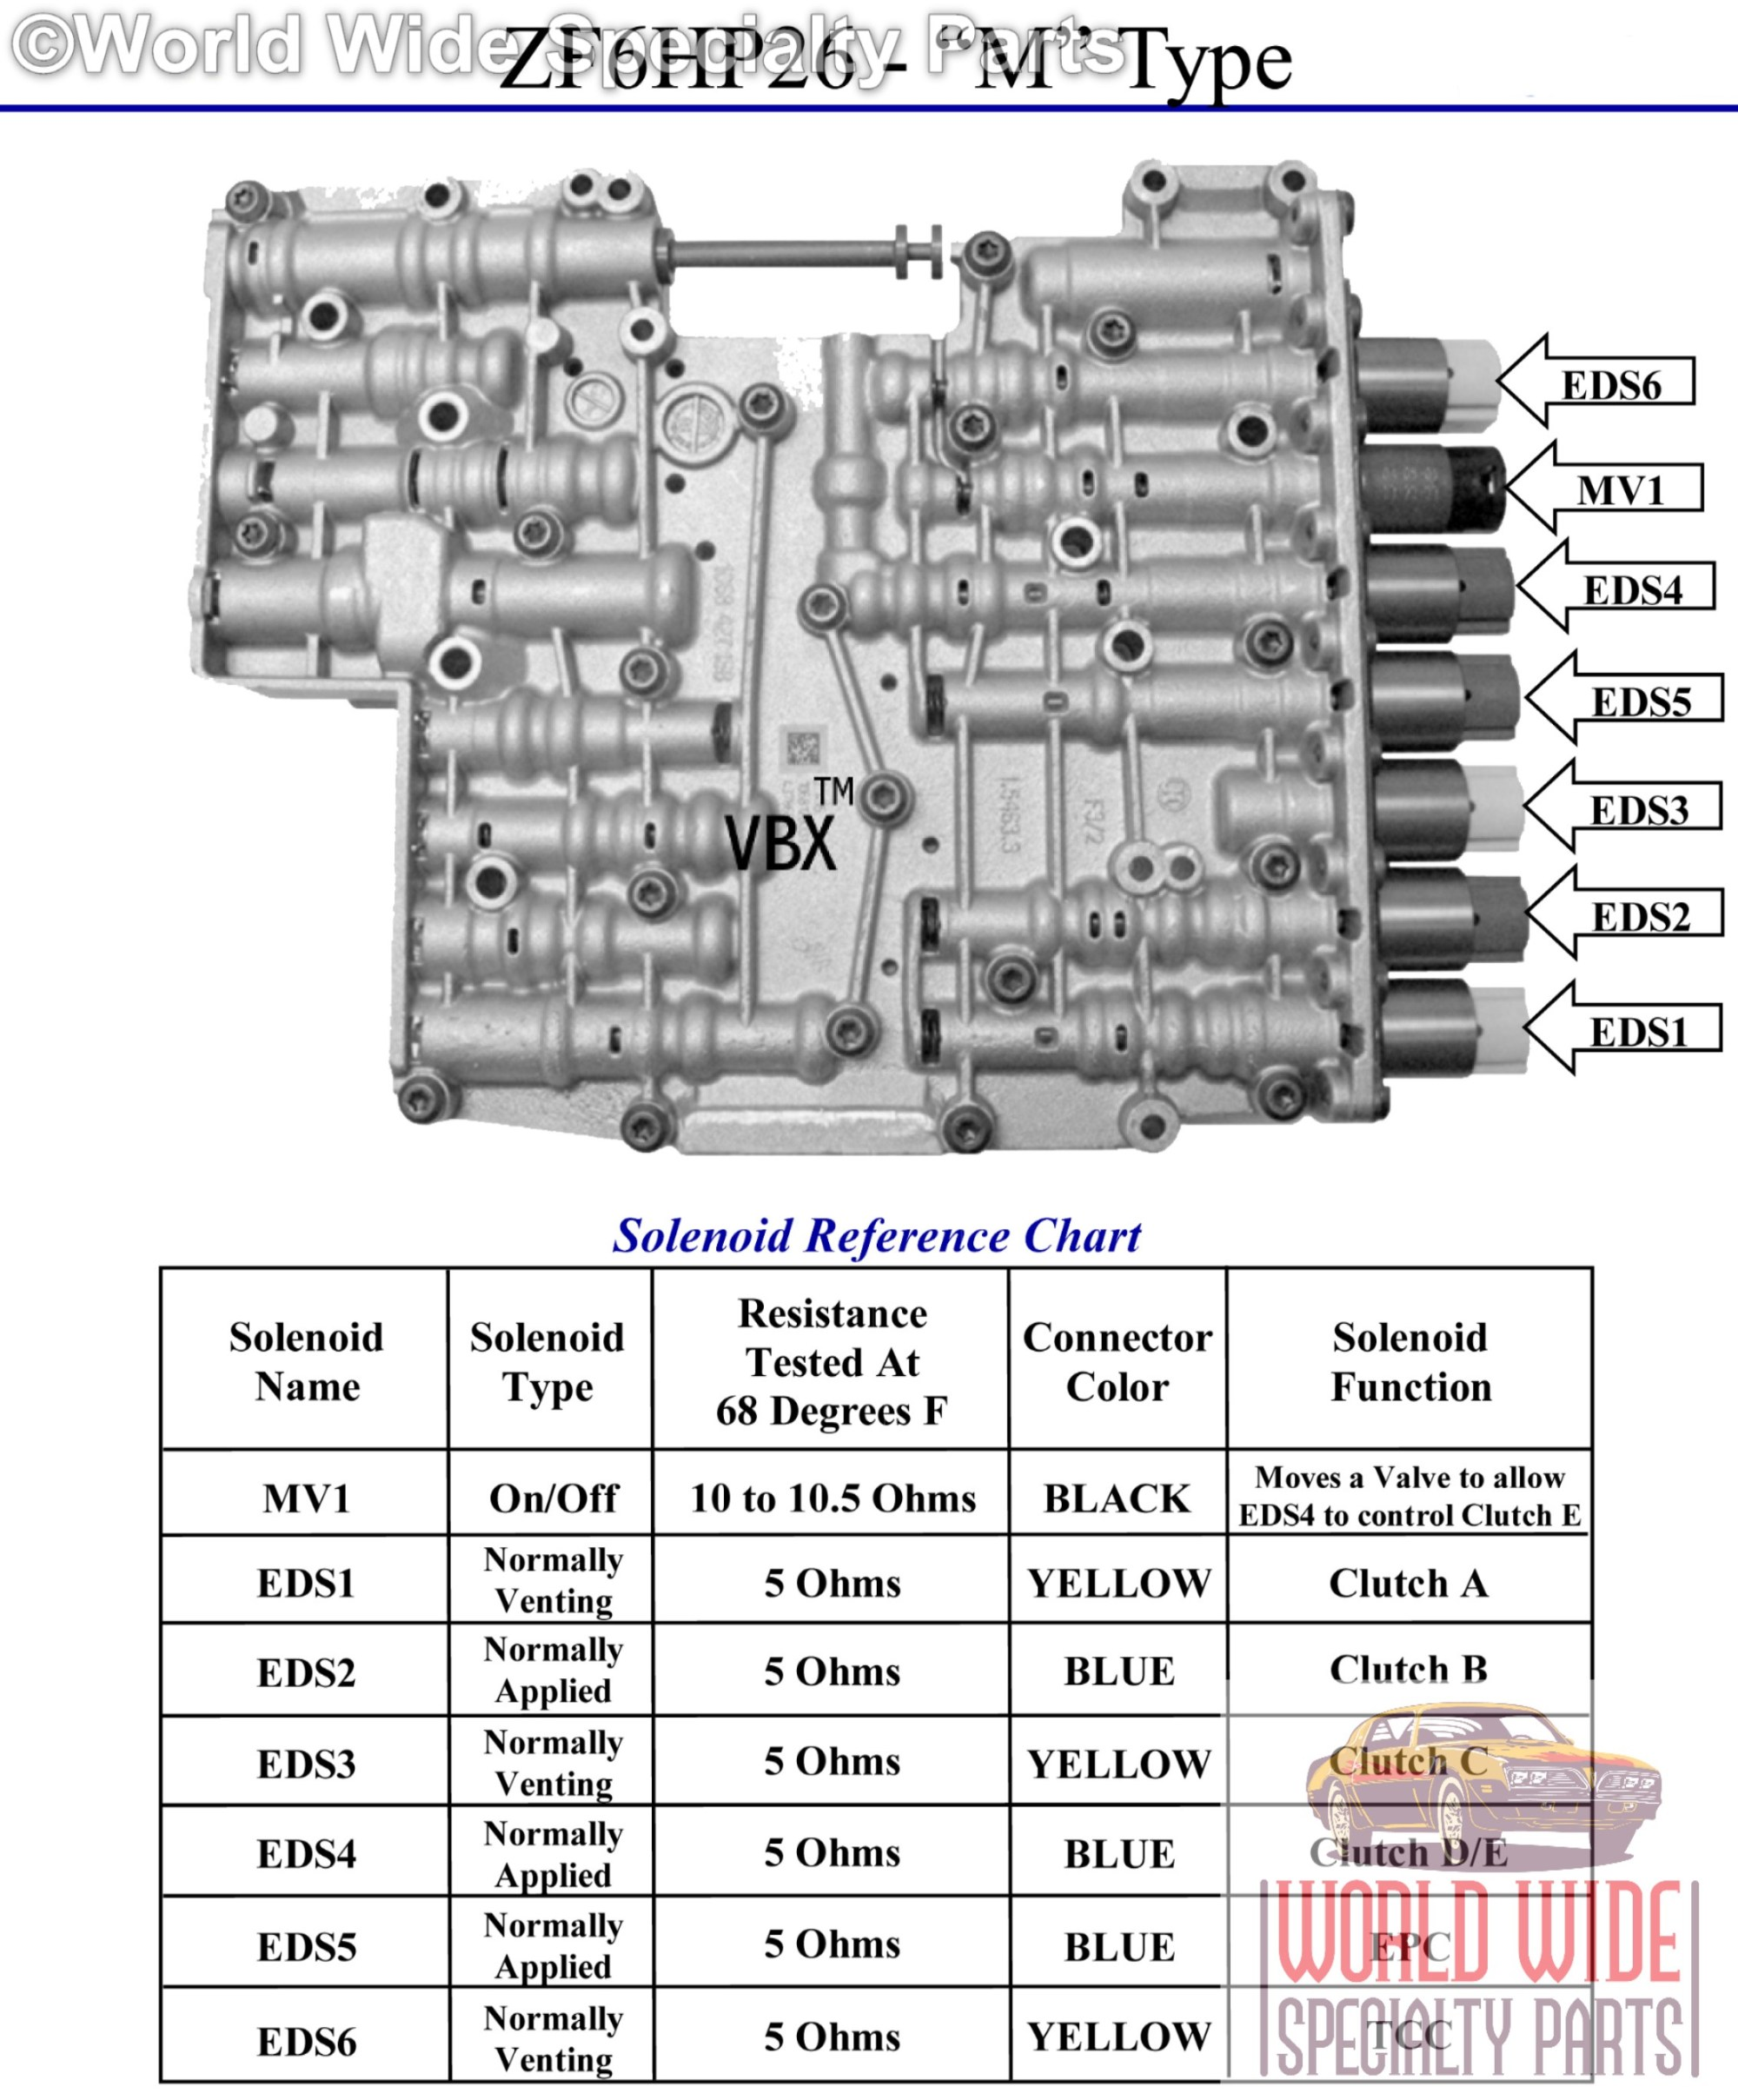 hight resolution of gm 4t65e valve body shift correction package by superior sonnax 1 2 accumulator control kit 36948 13k resolves factory tech 1989 2003